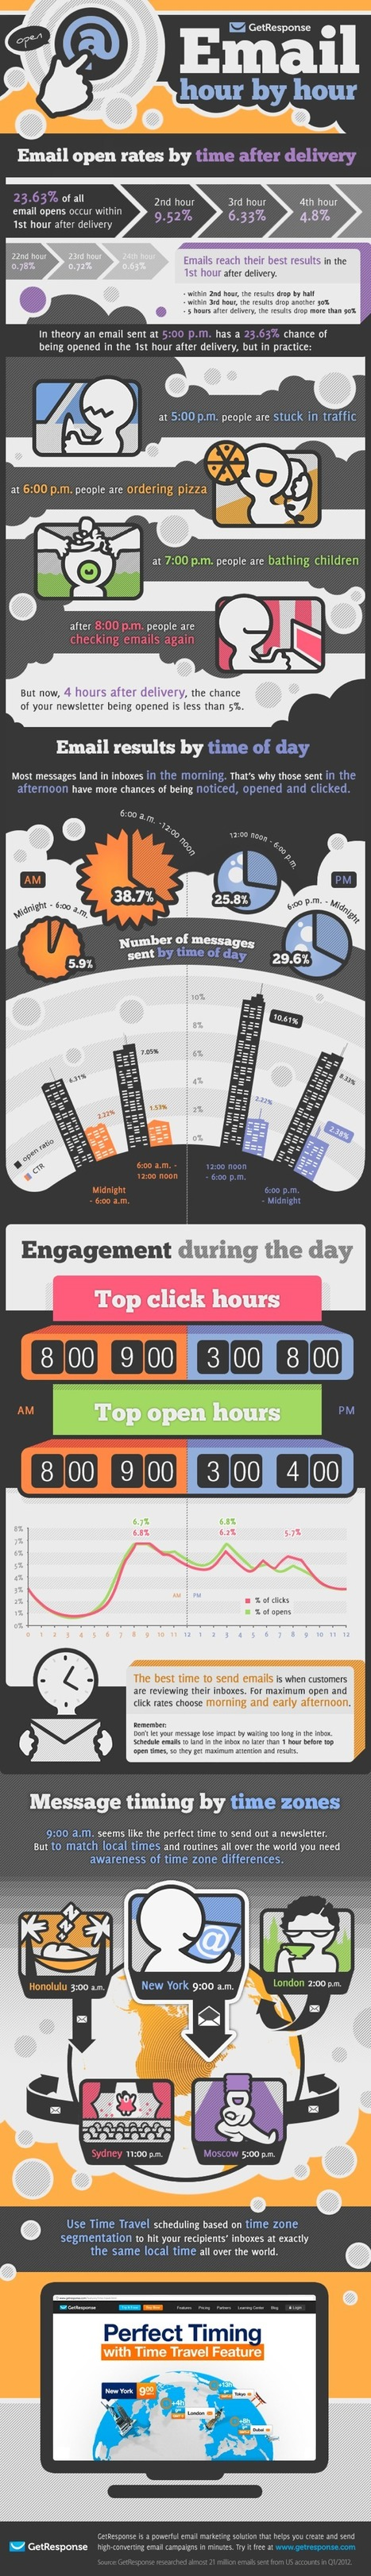 Emails Reach Their Best Results In the 1st Hour #Infographic | Sniffer | Scoop.it